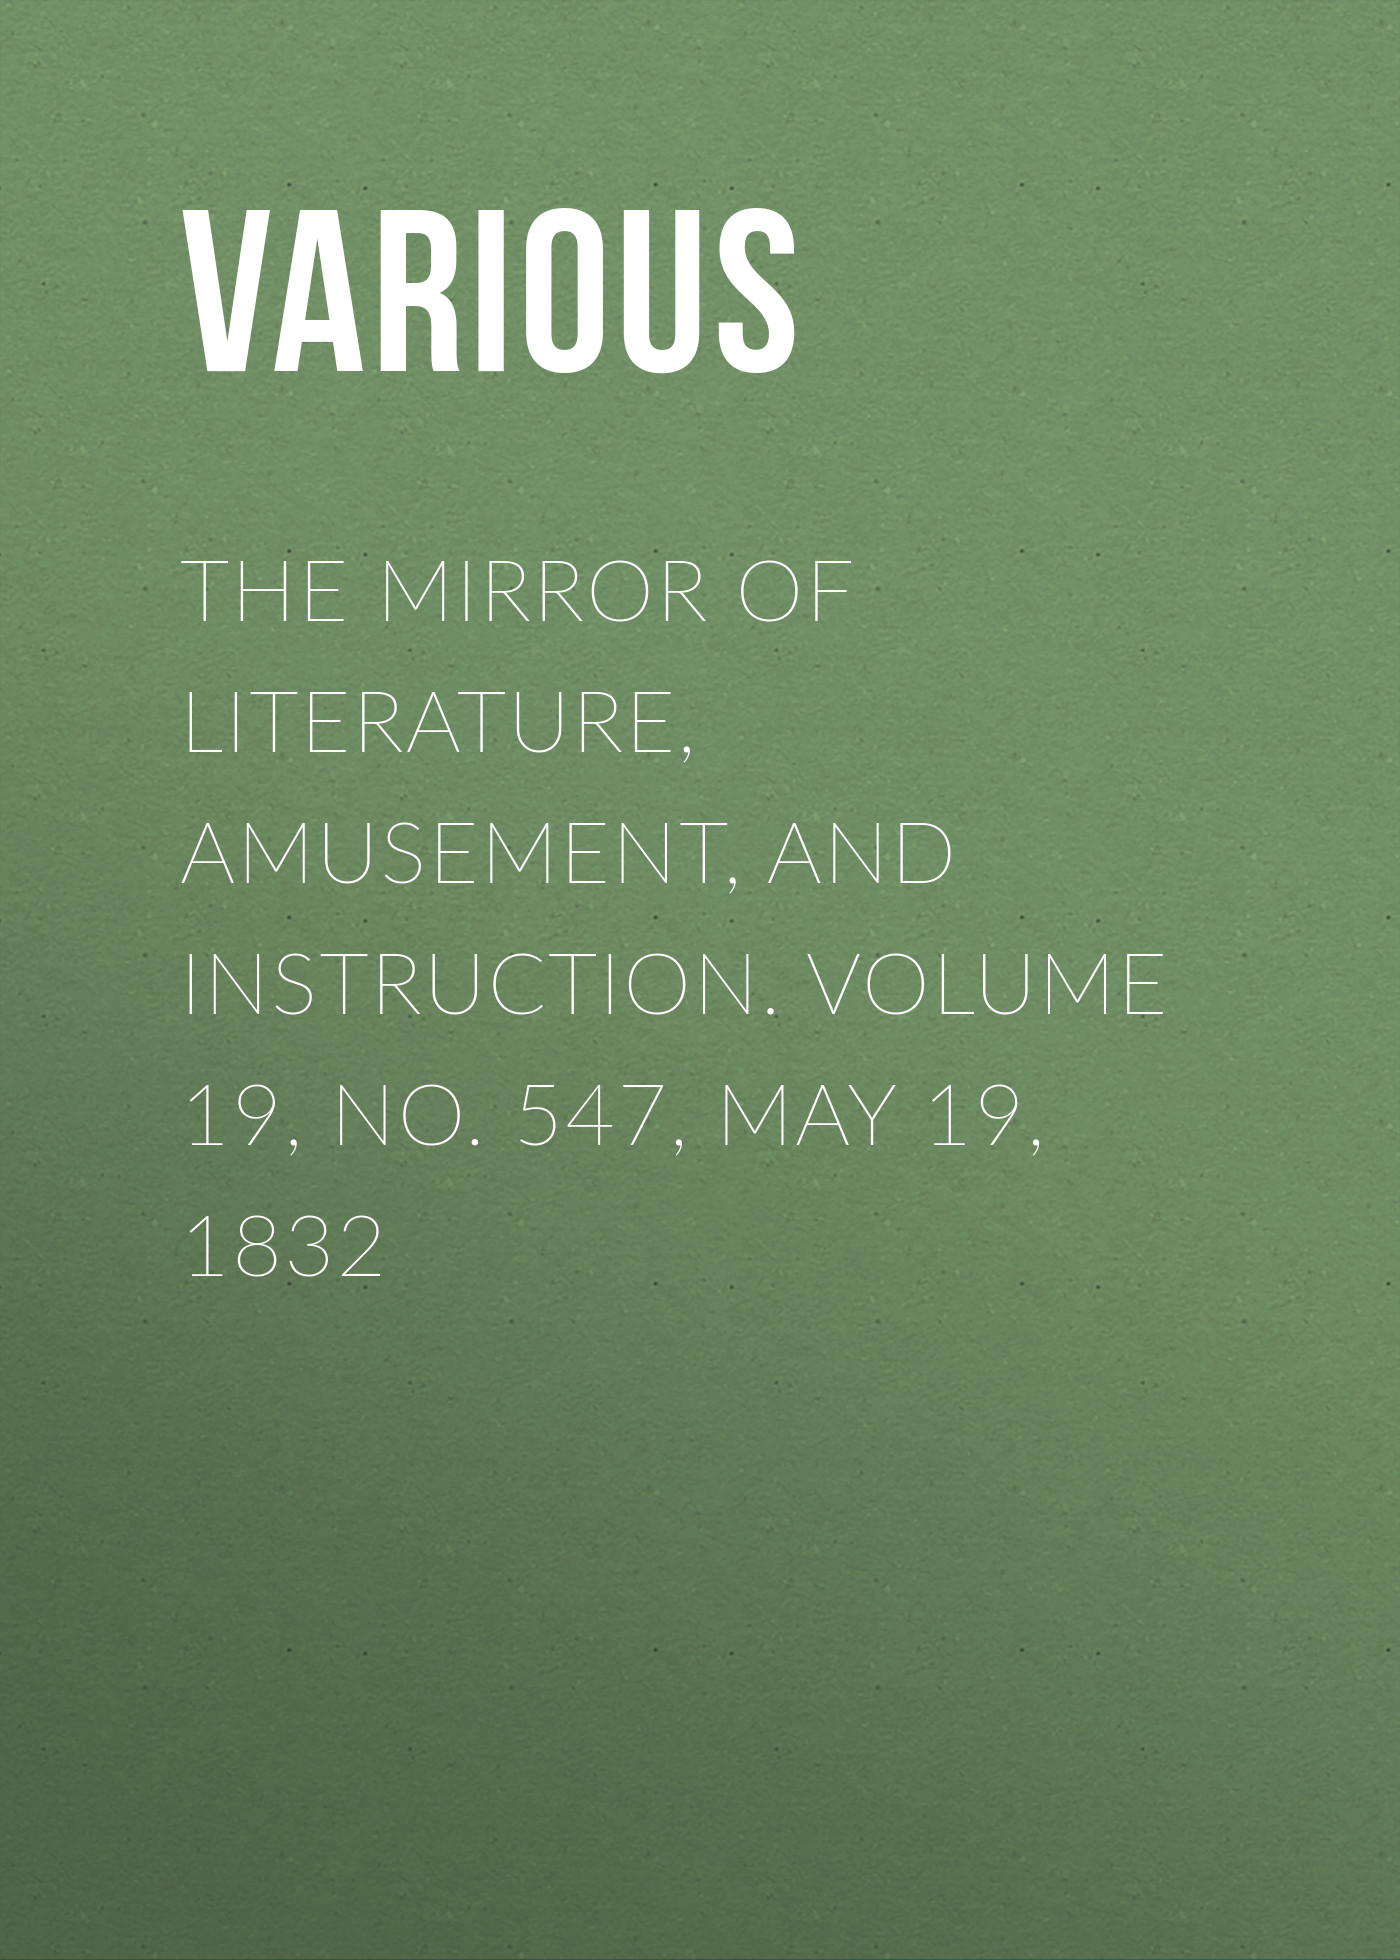 Various The Mirror of Literature, Amusement, and Instruction. Volume 19, No. 547, May 19, 1832 various the mirror of literature amusement and instruction volume 19 no 530 january 21 1832